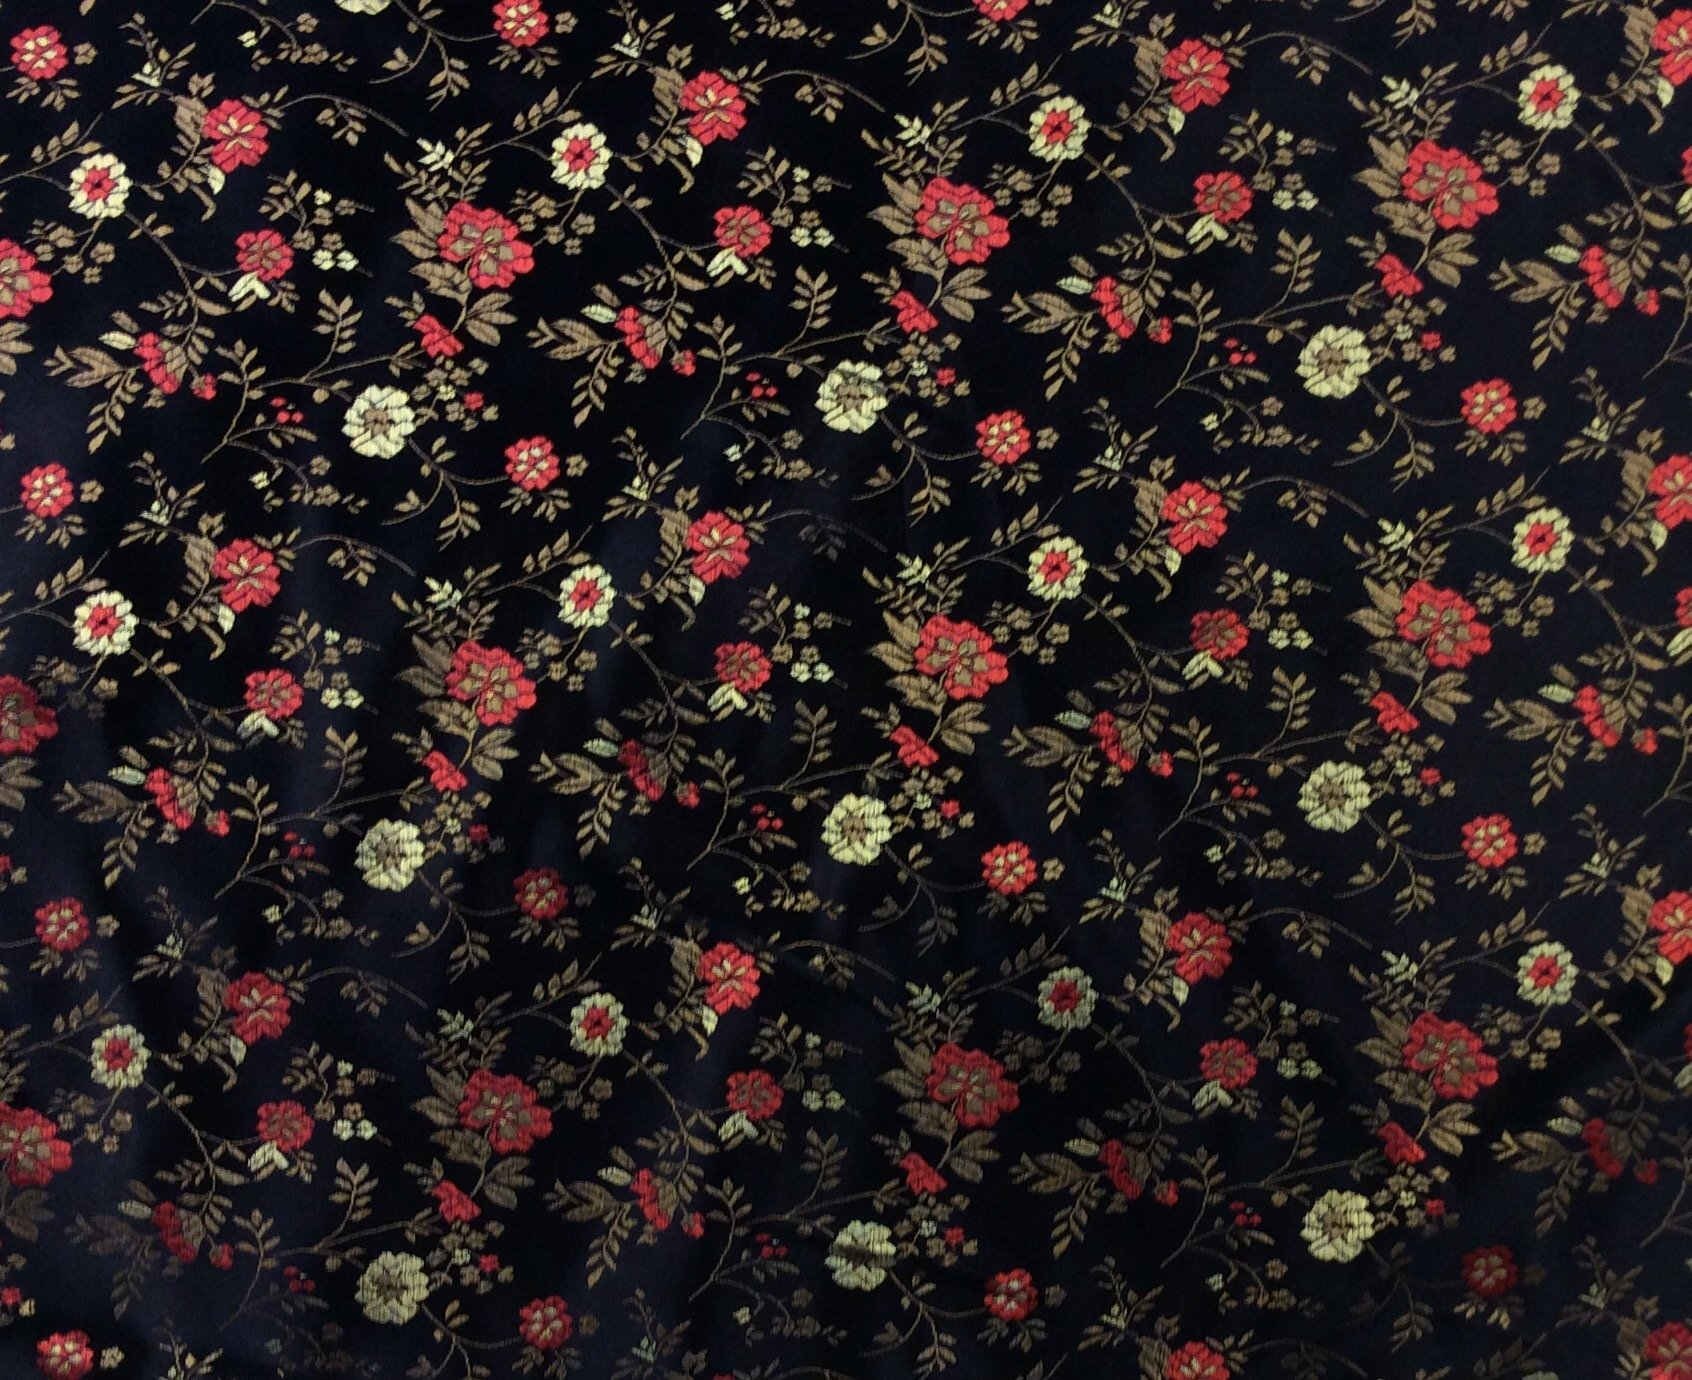 Floral Brocade Asian Influence Apparel Sewing Fabric NB2005